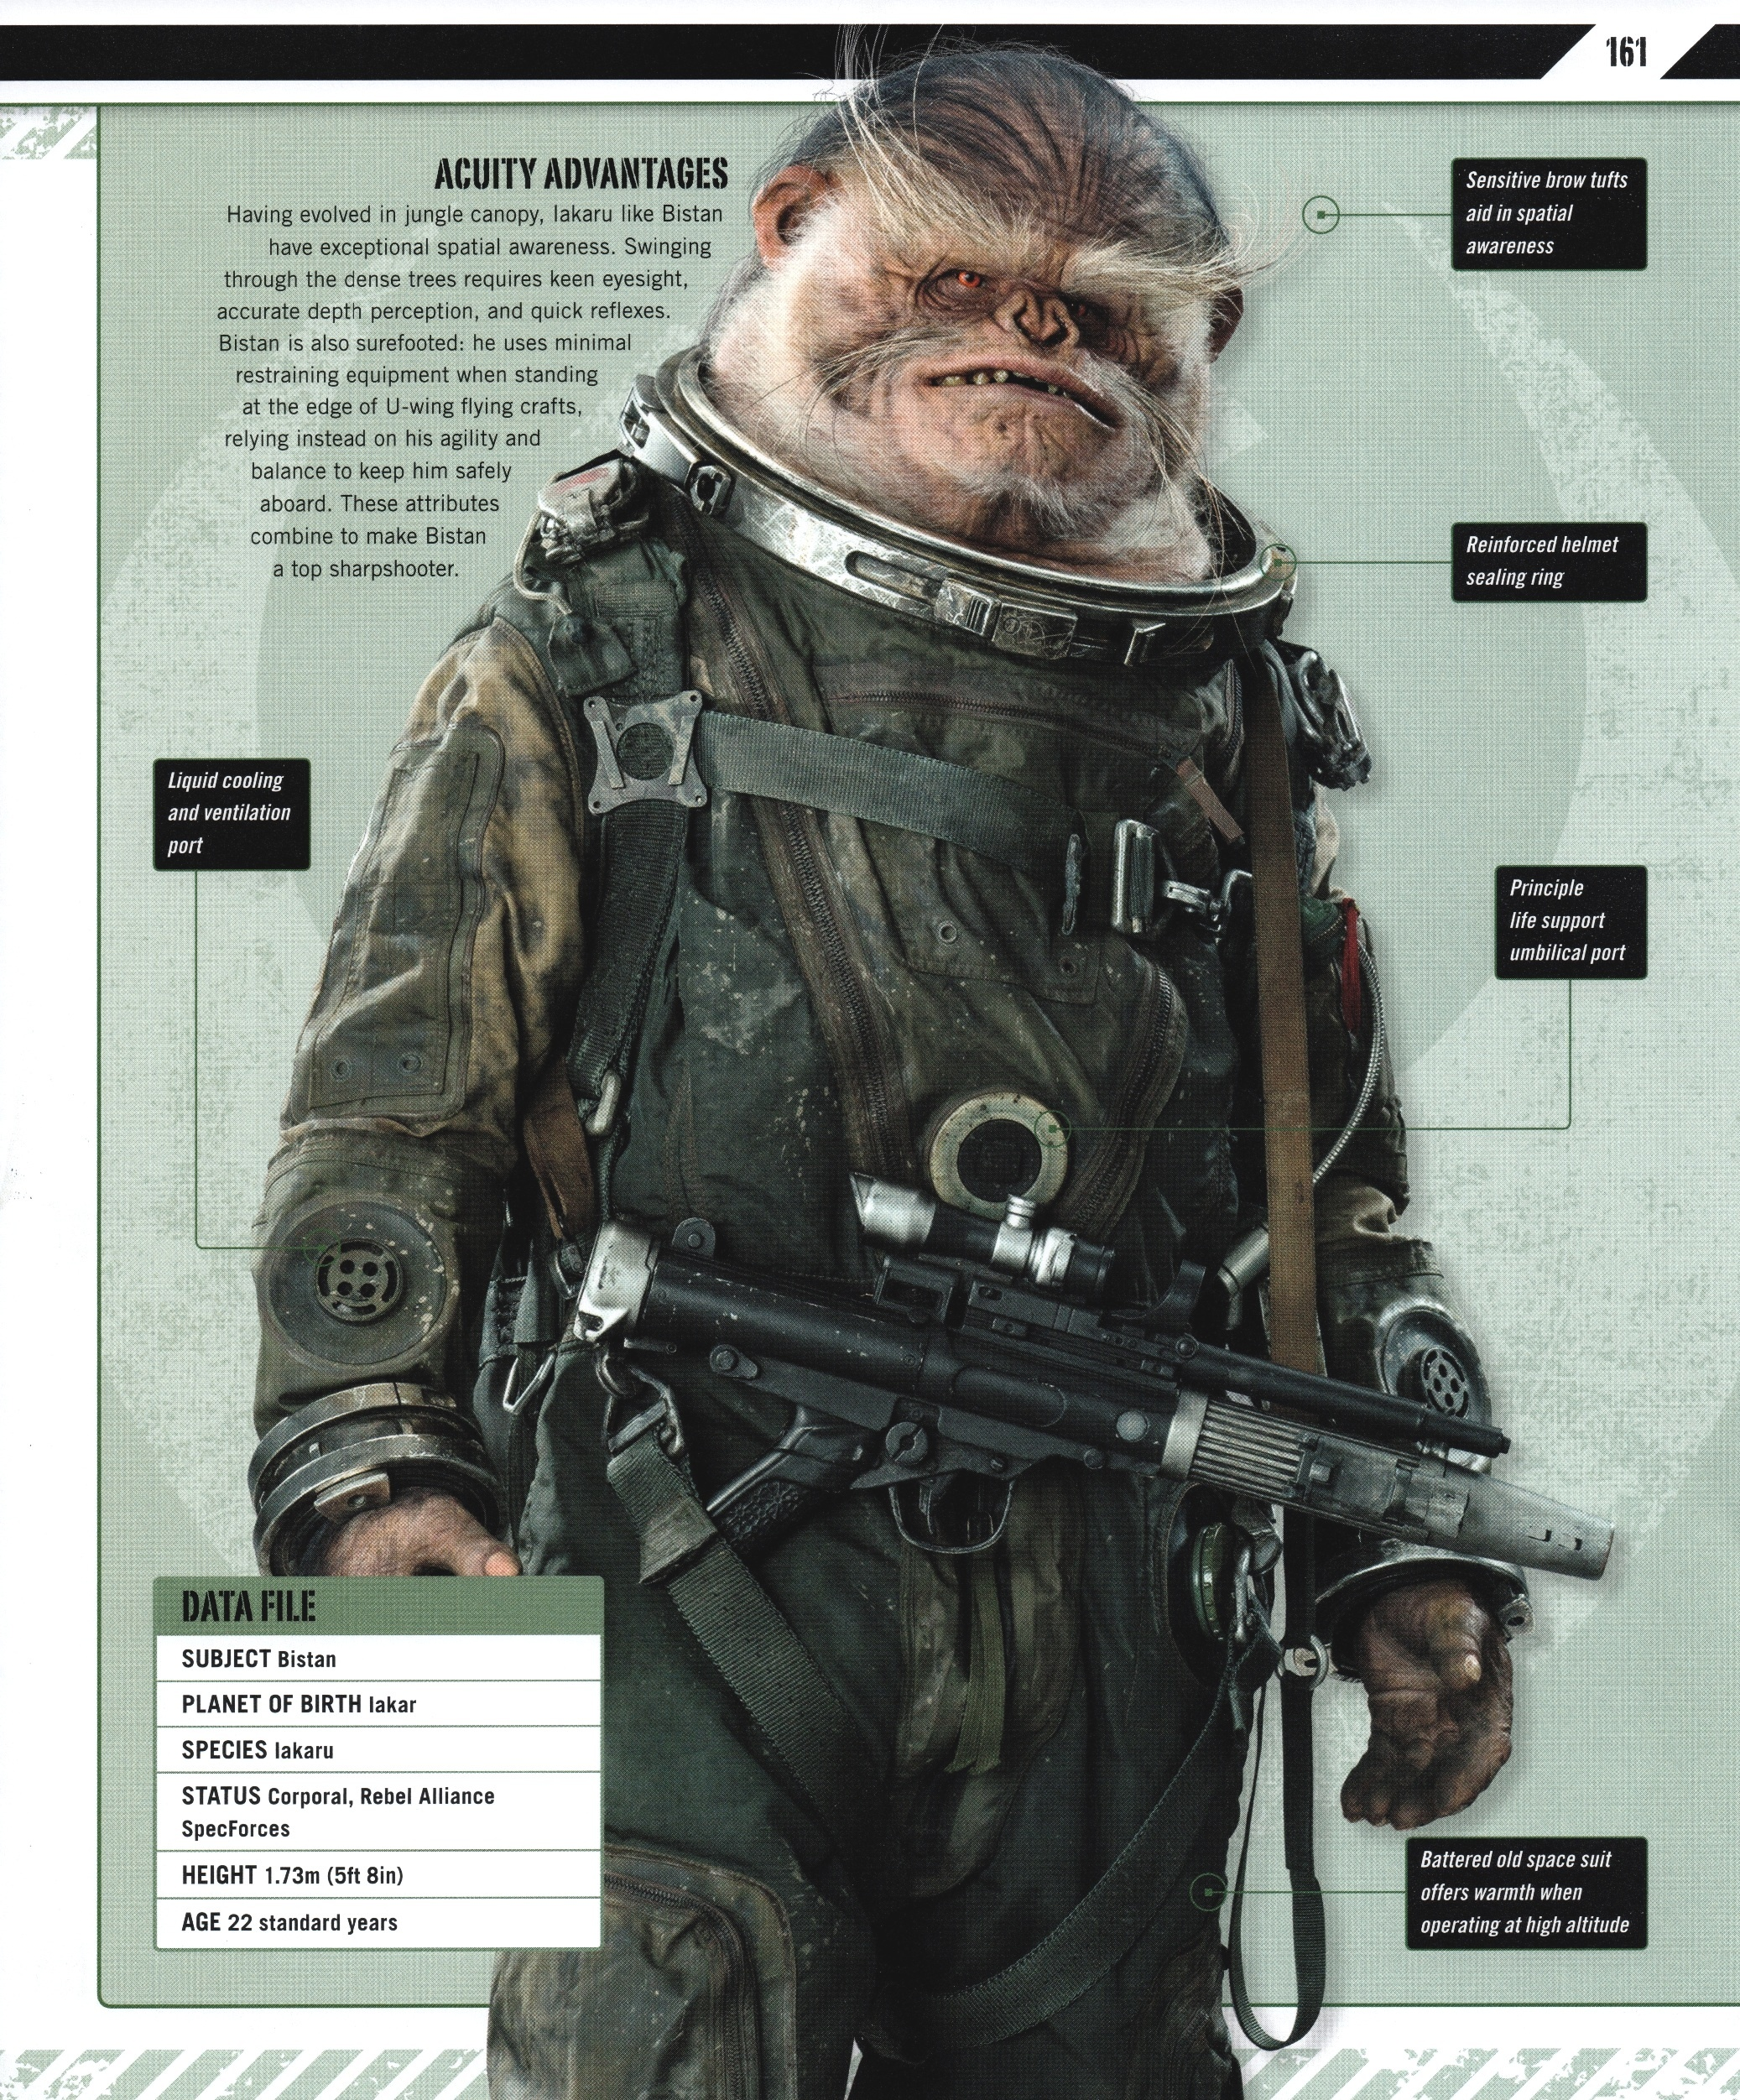 Rogue One Ultimate Visual Guide (b0bafett_Empire) p161